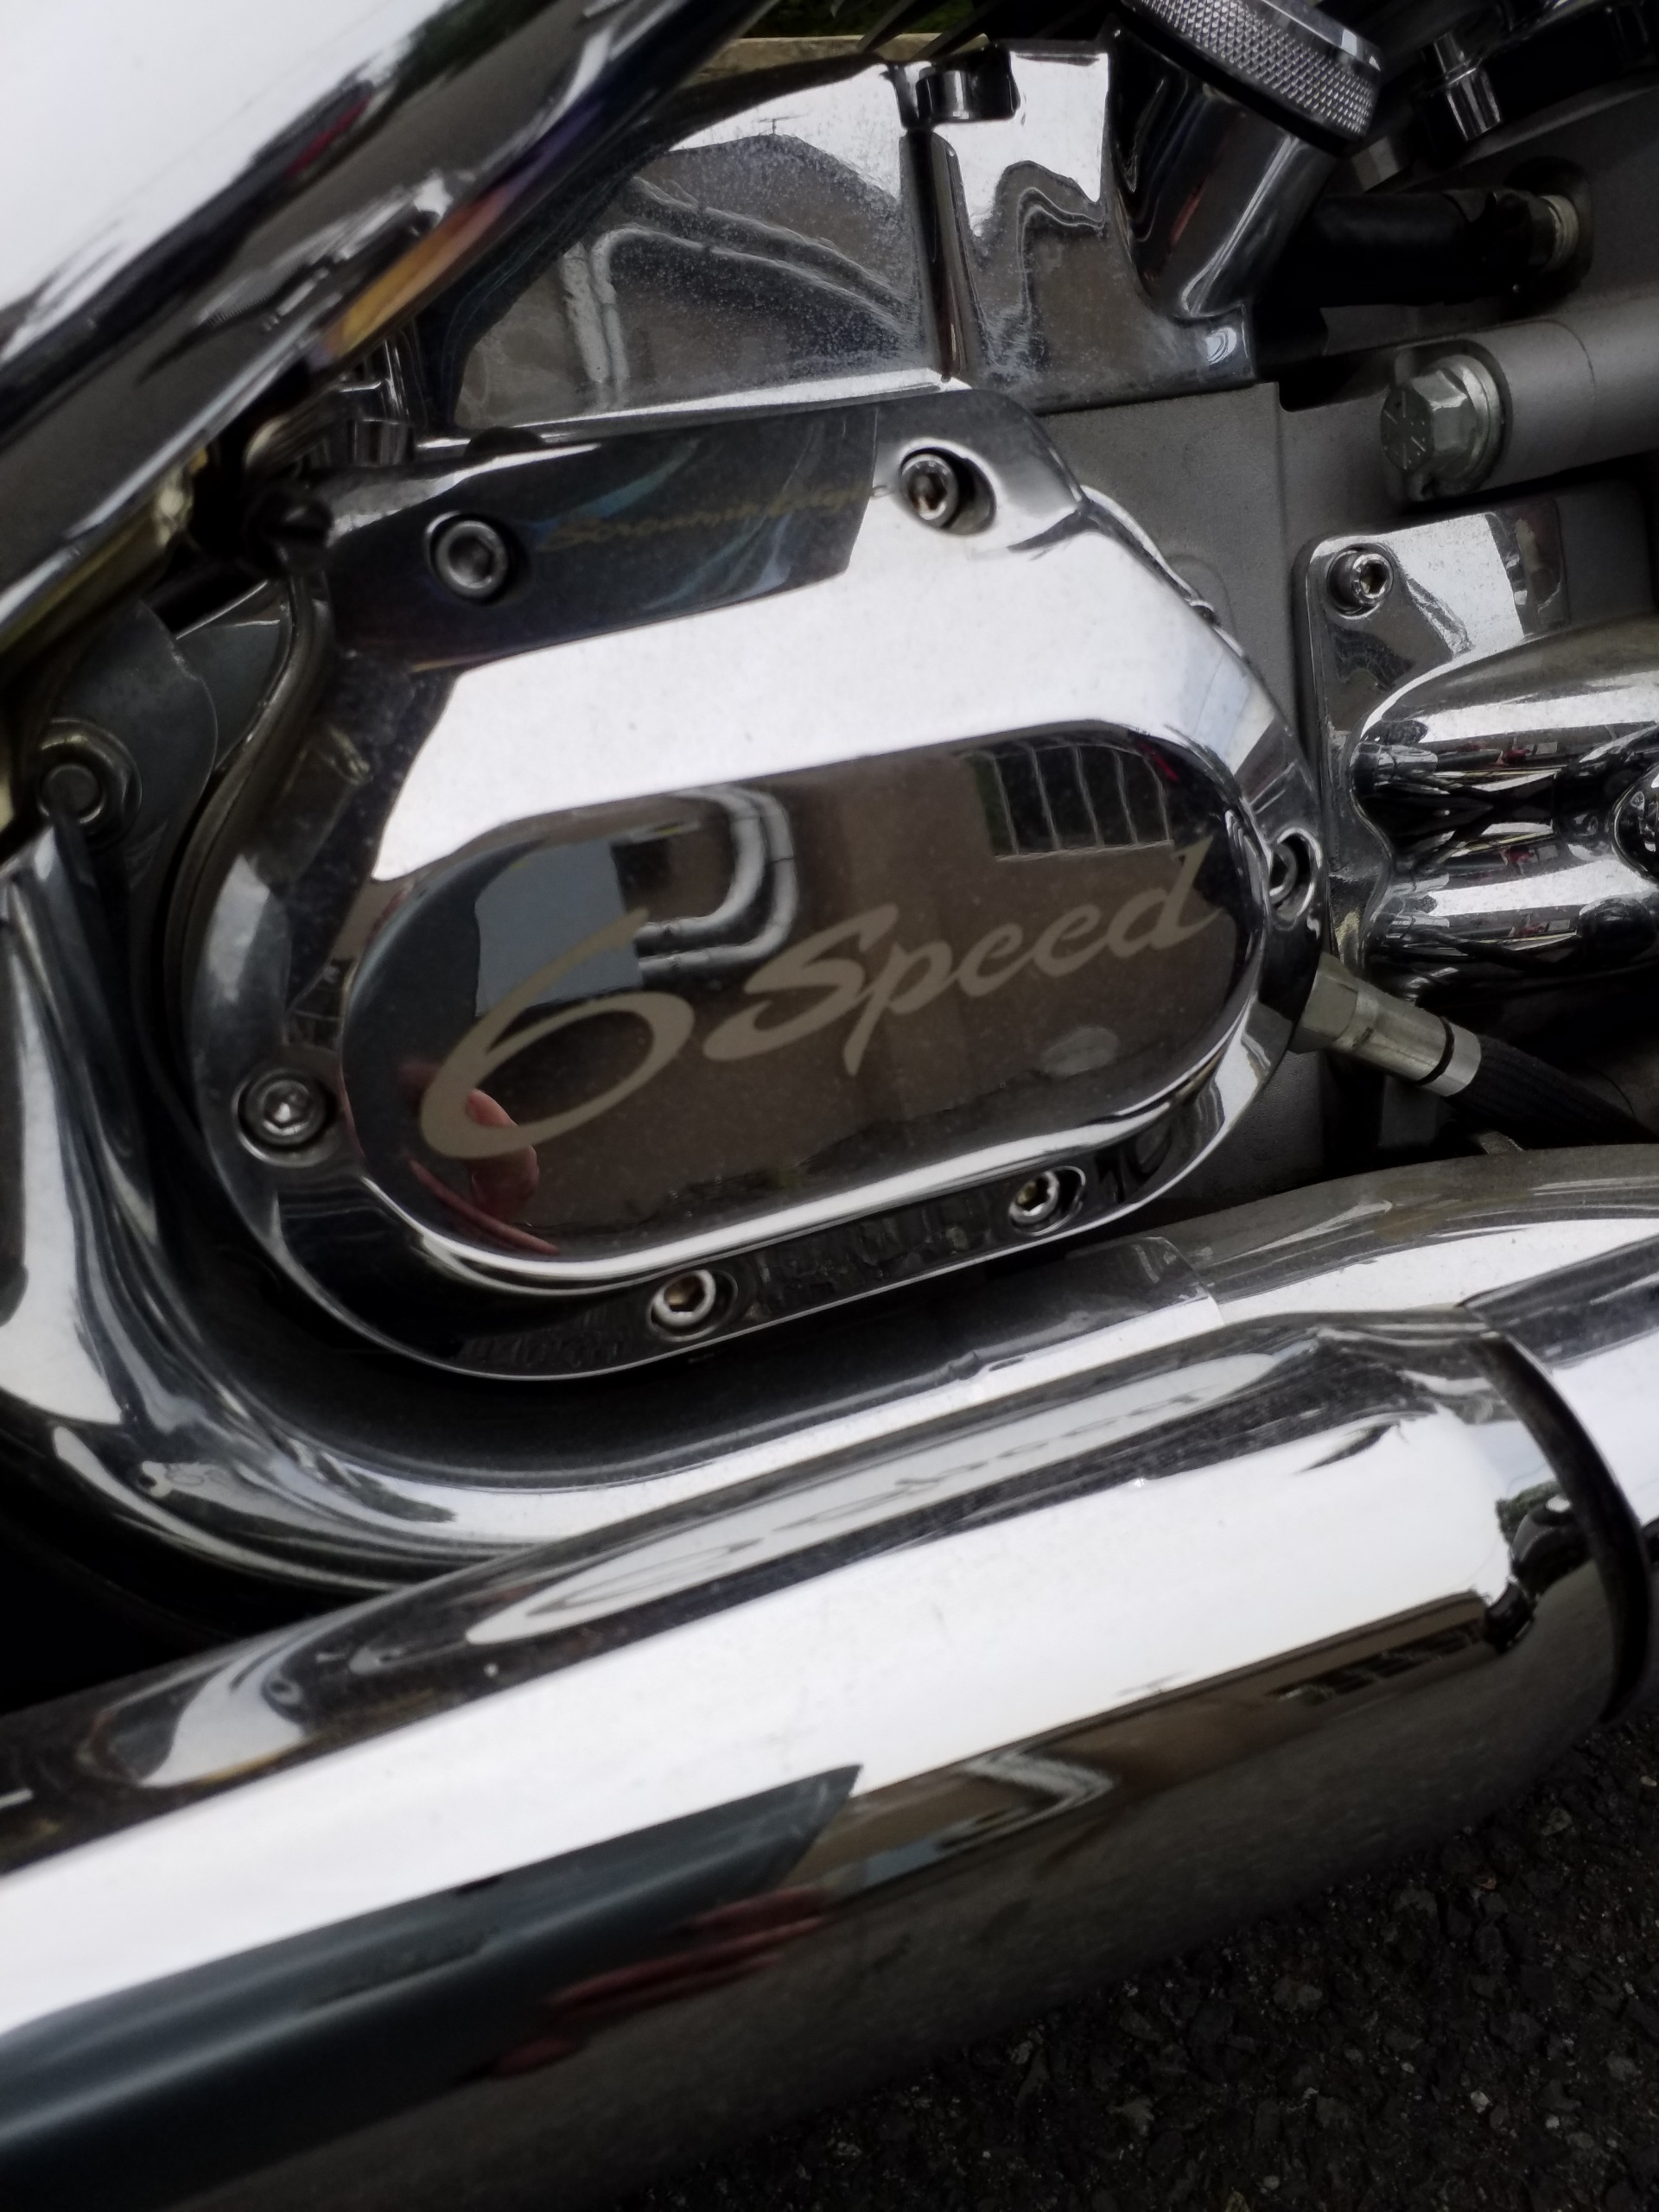 Used-2003-Harley---Davidson-Super-Glide-100th-Anniversary